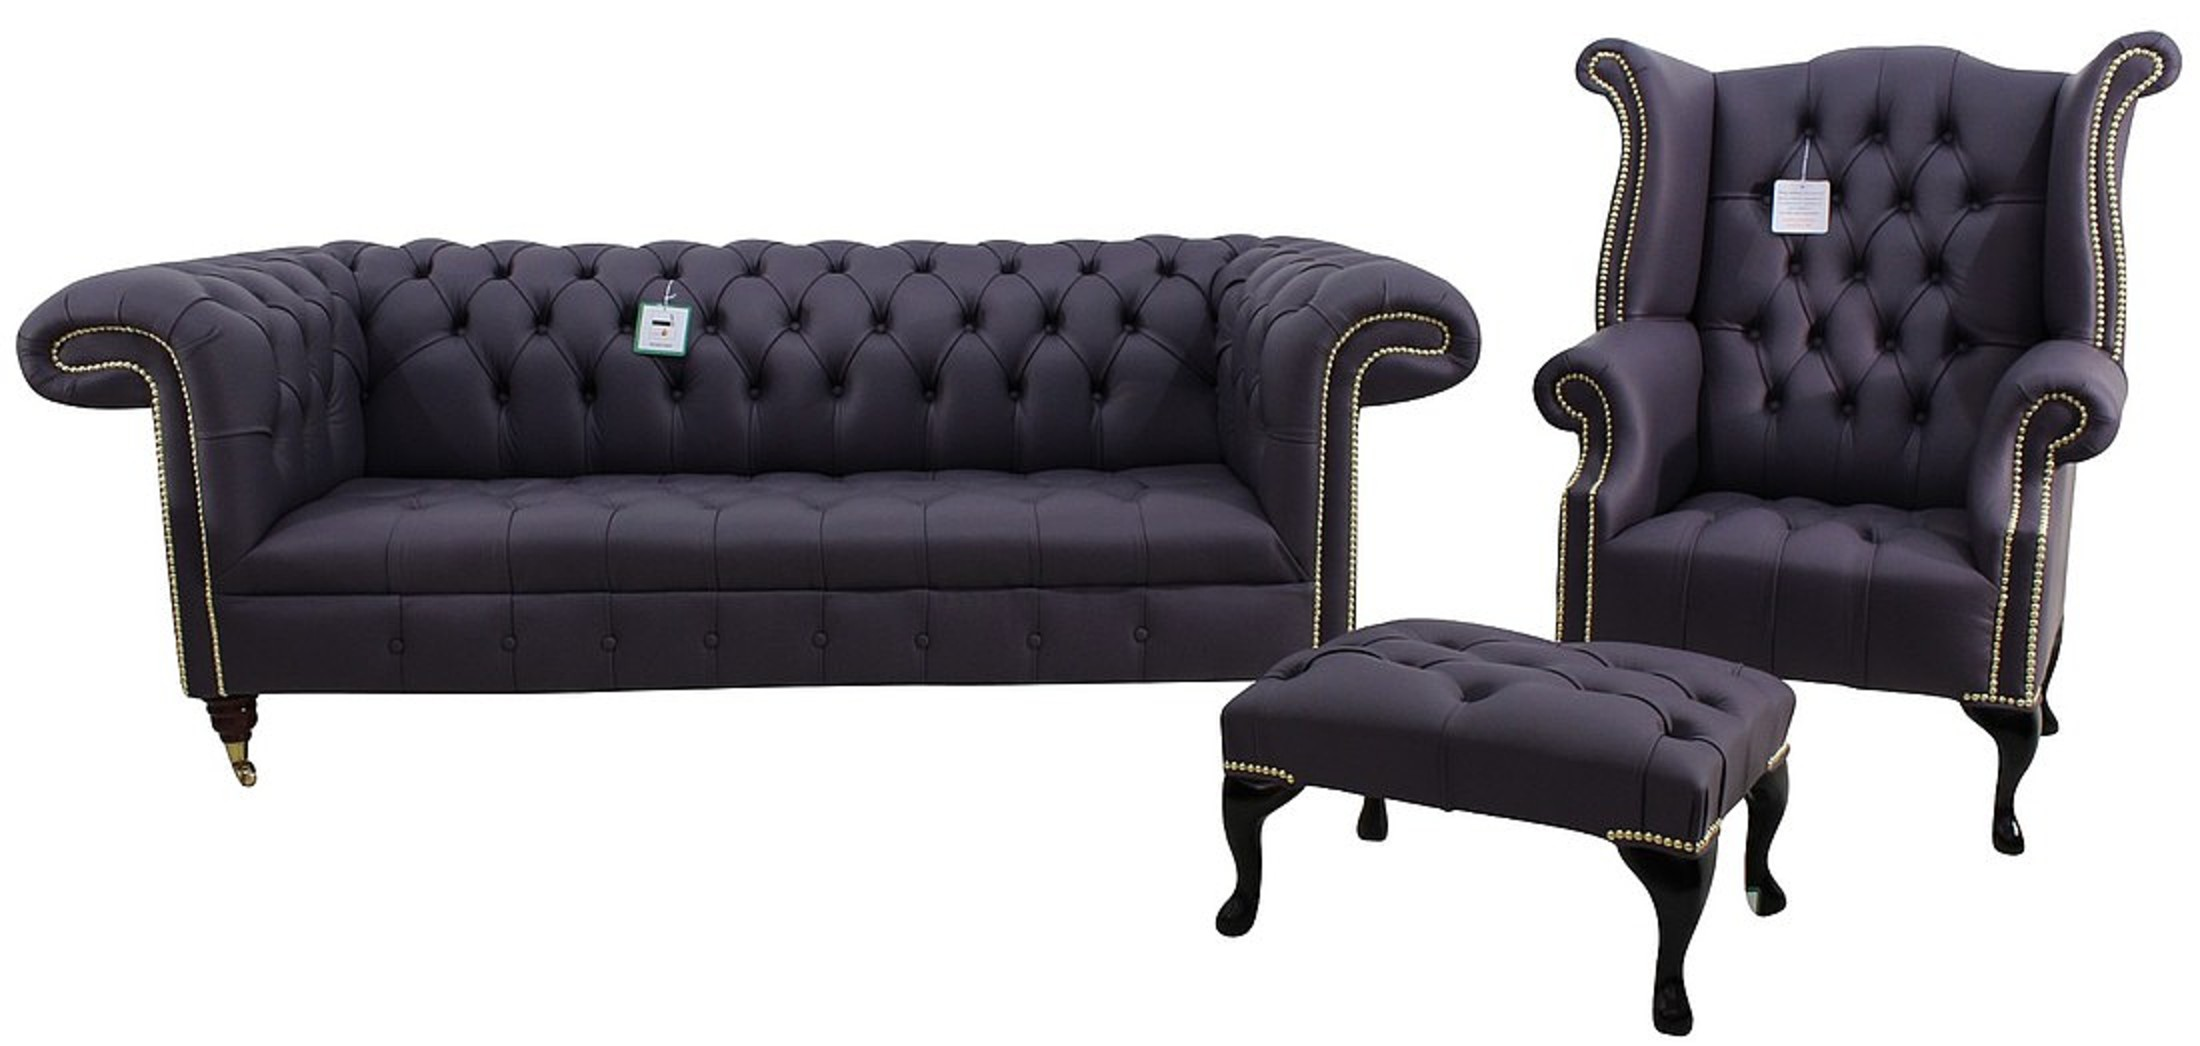 Chesterfield 1857 Suite 3 Seater Sofa + Queen Anne Wing Chair + Footstool  Amethyst Purple Leather